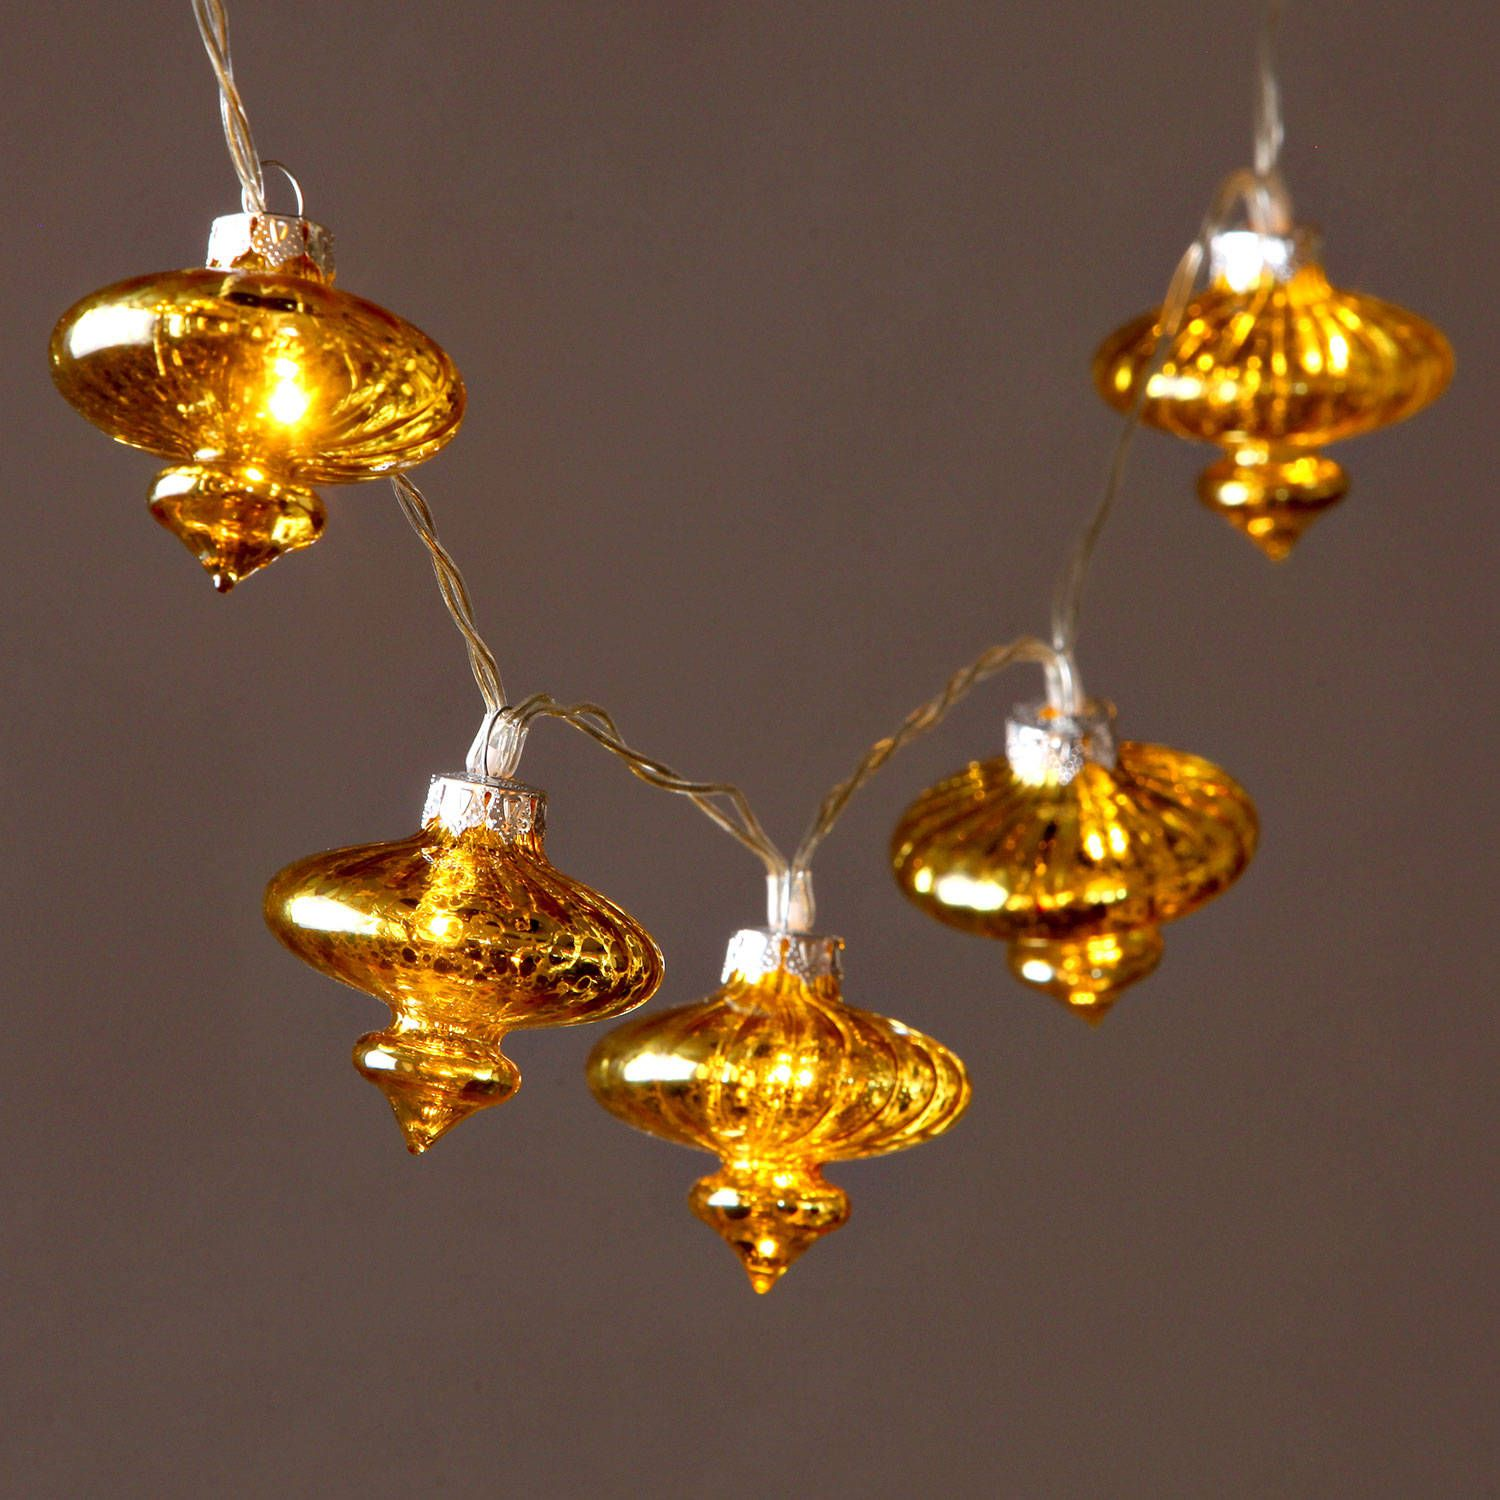 decorative string lighting. Unique String Strand Of 24 Warm White LED Gold Mercury Mini Glass Lantern Battery String  Lights Throughout Decorative Lighting L